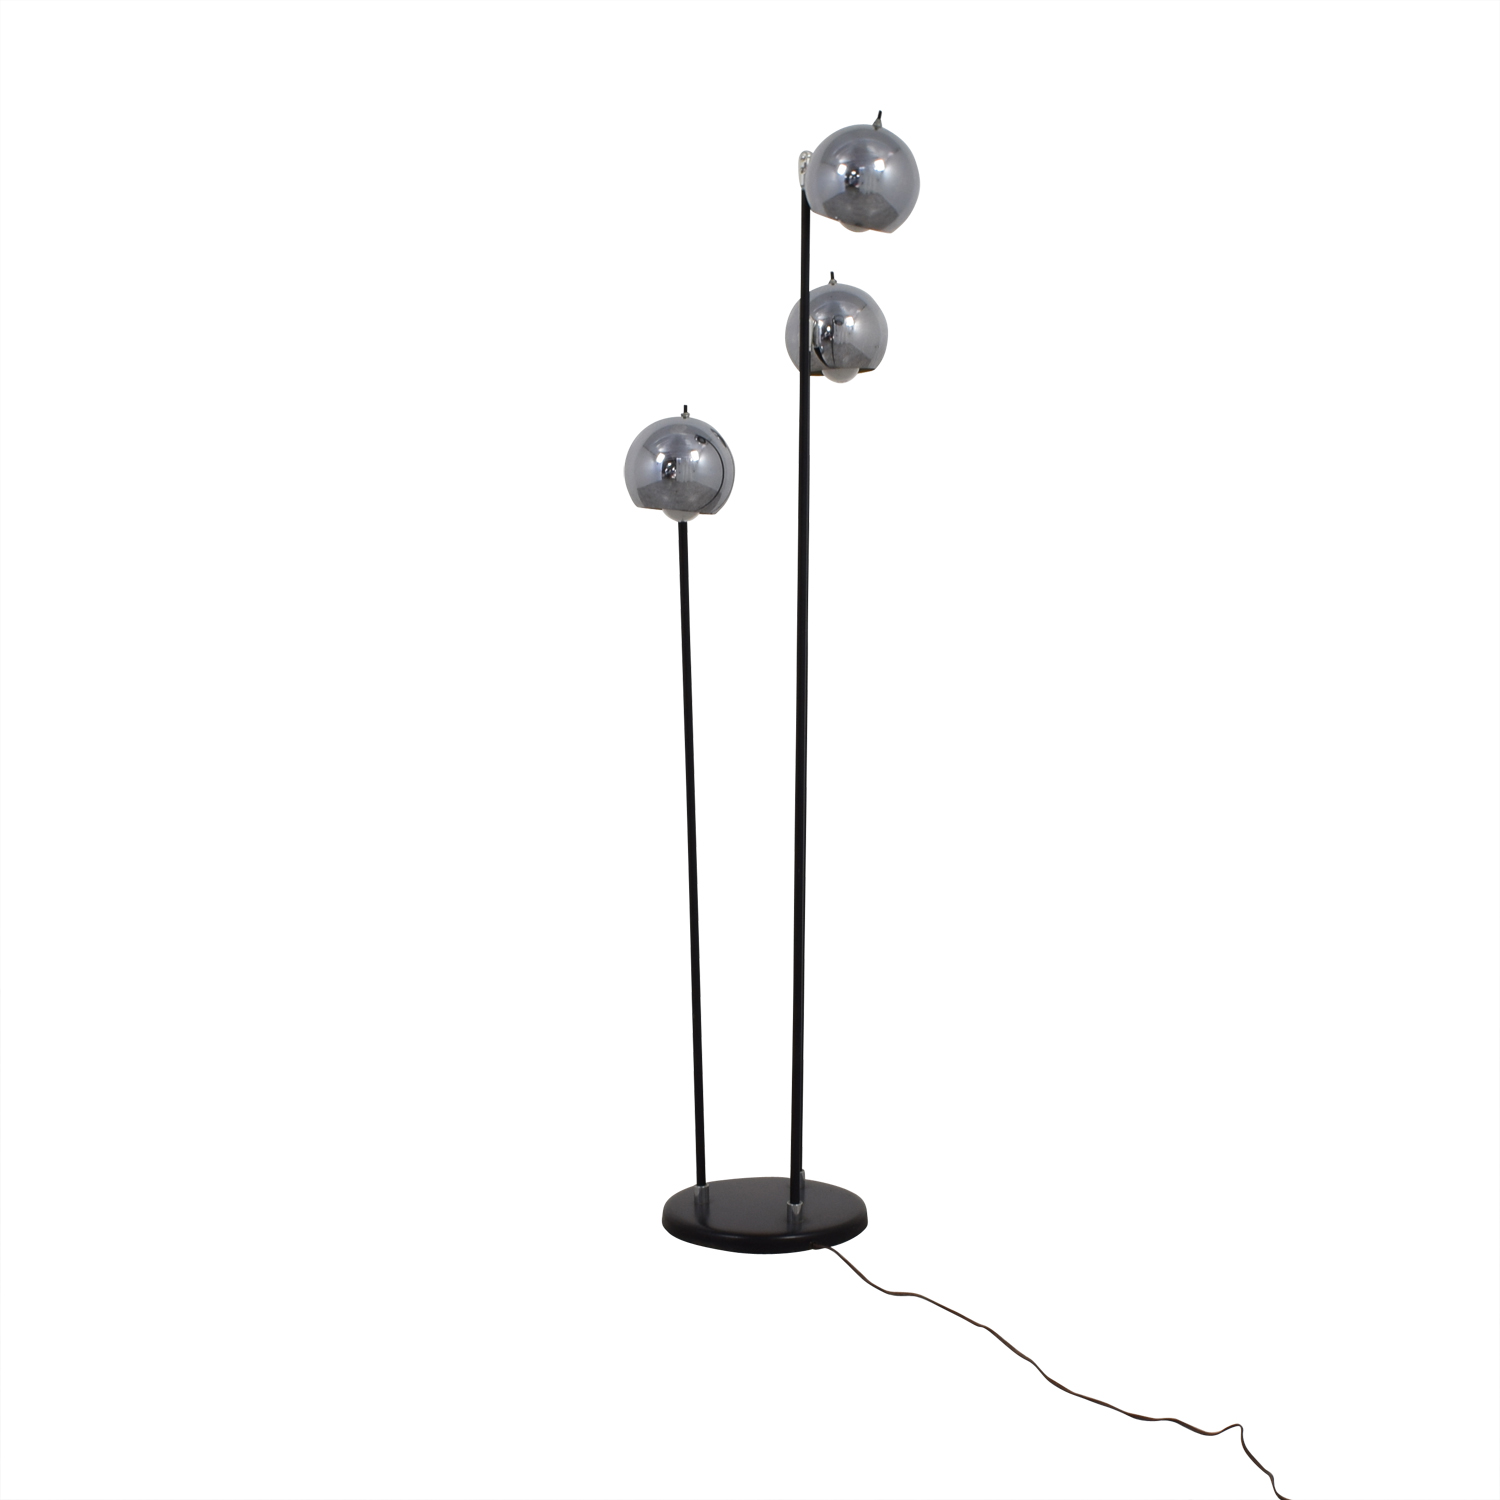 uk lamps cheap lamp standing awesome with design designer amazon floor throughout modern tables stylish attached